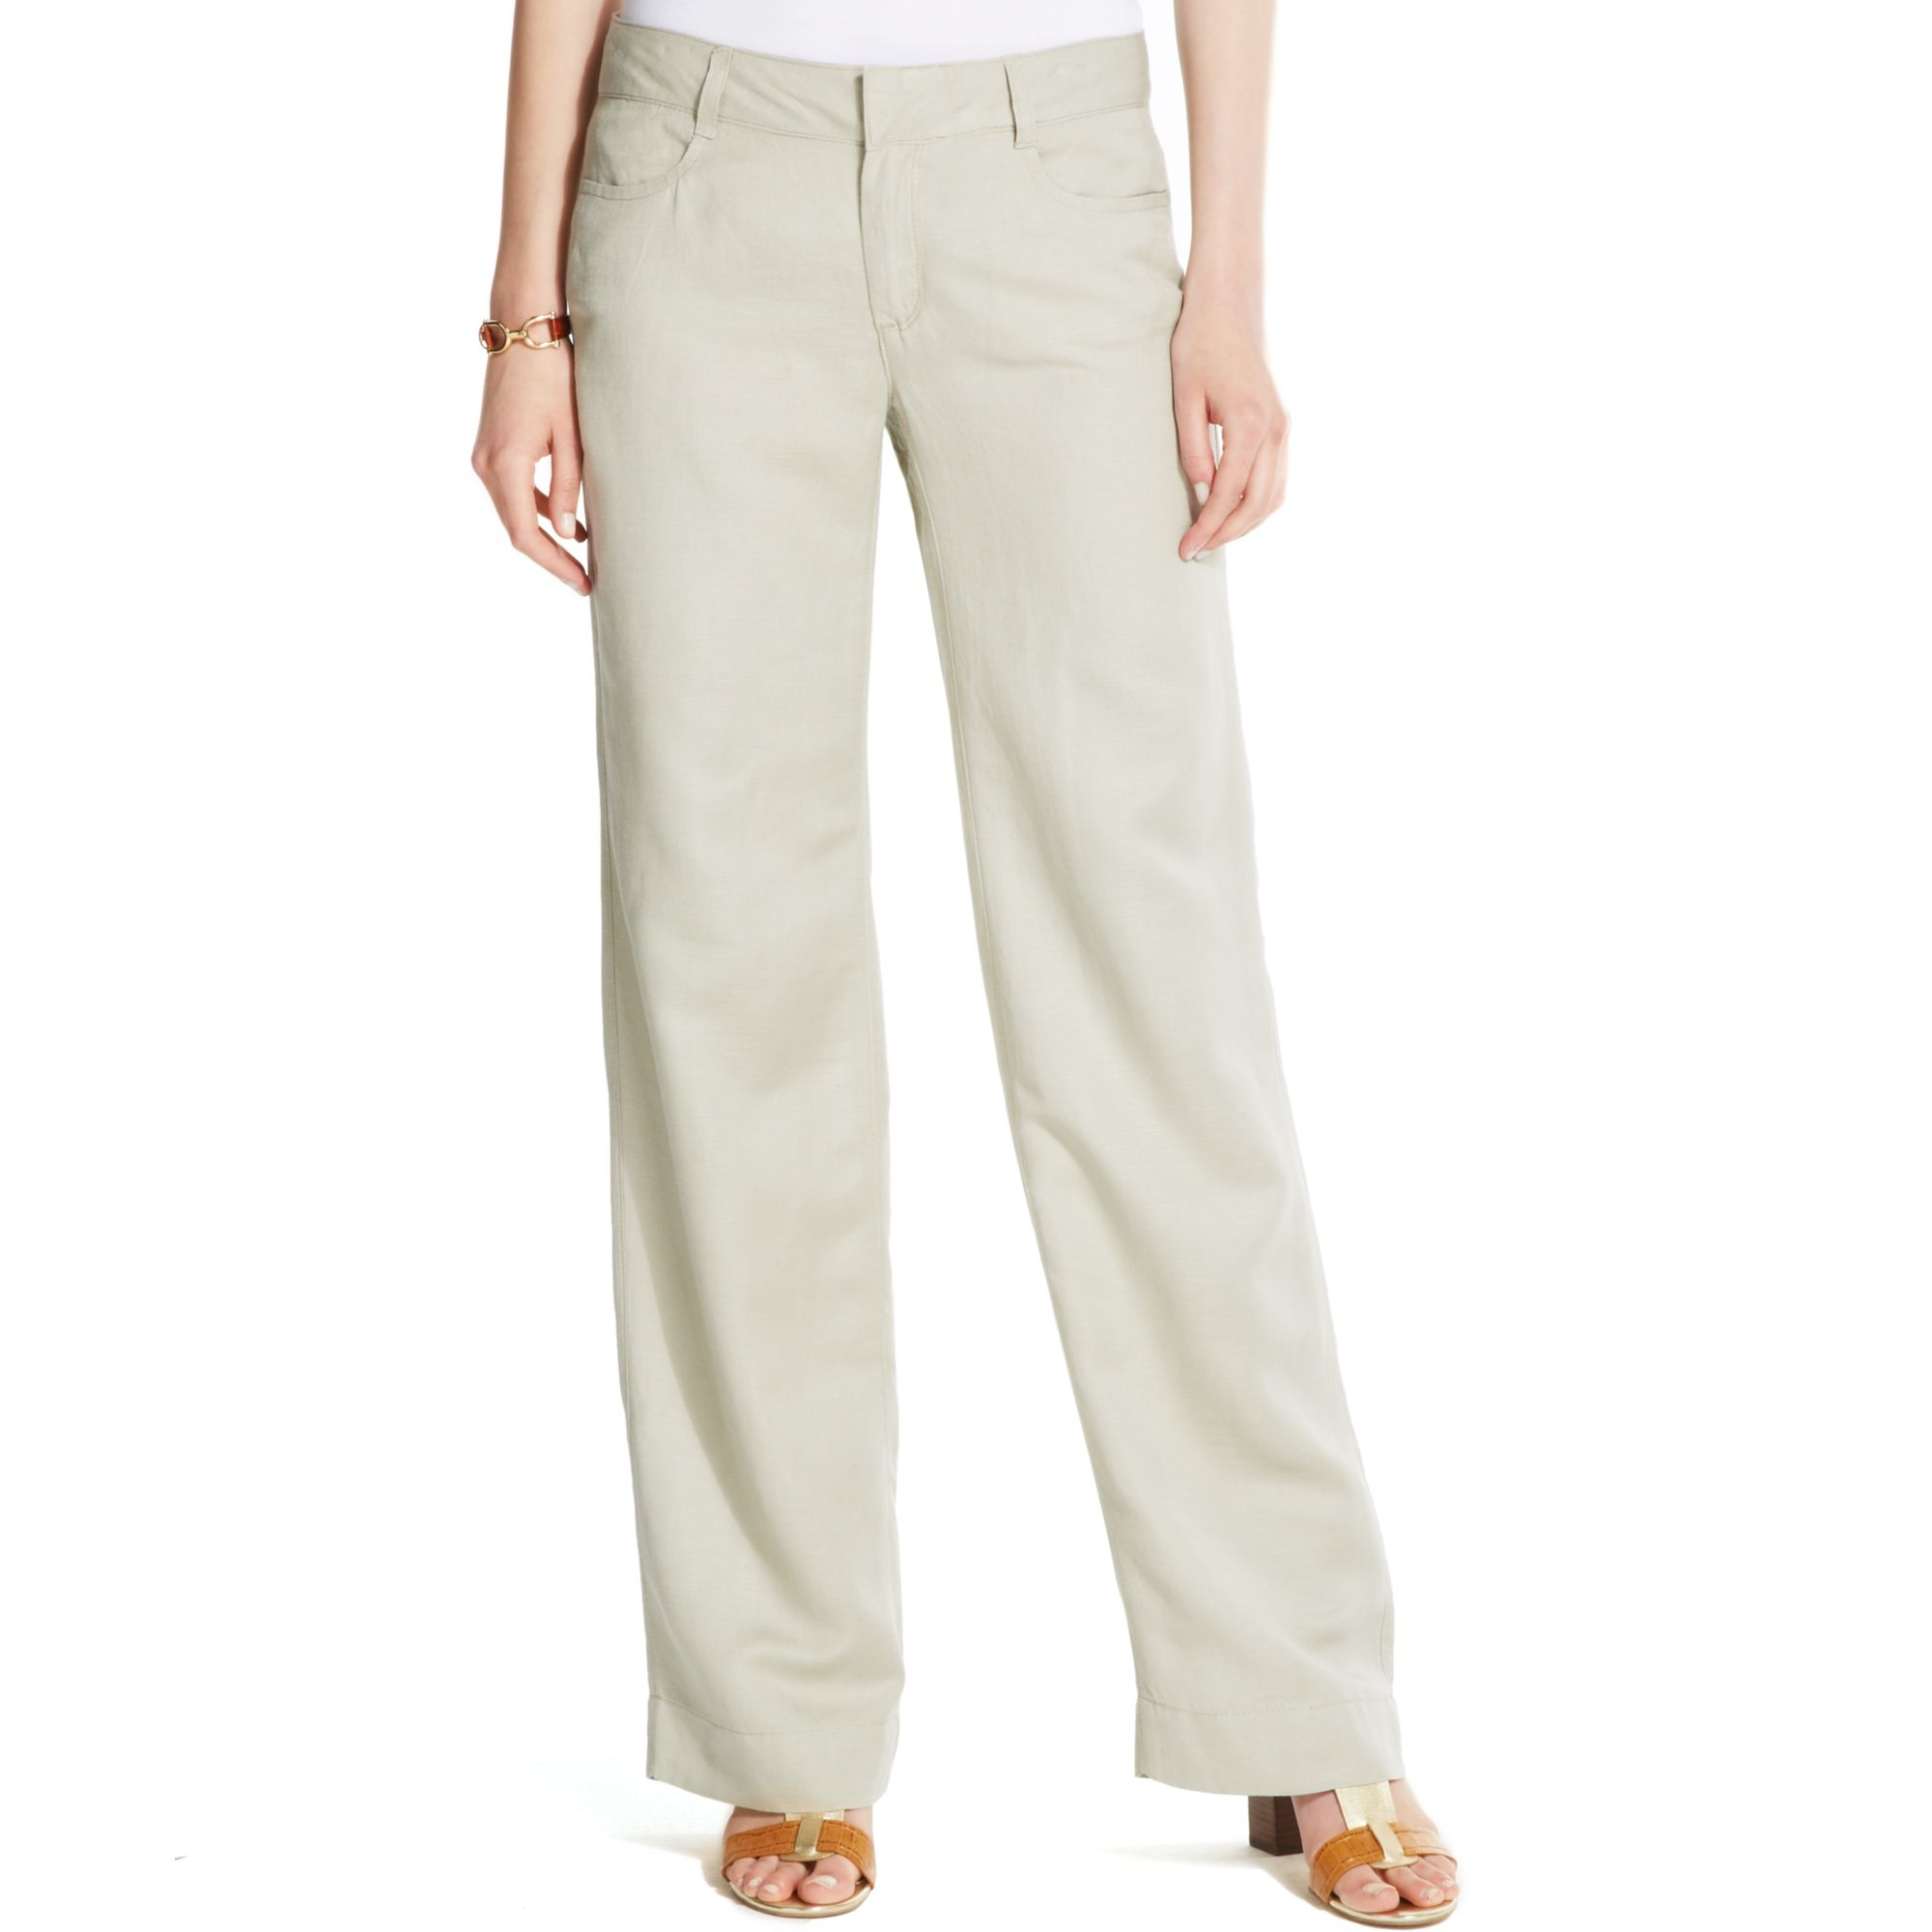 Shop for khaki linen pants online at Target. Free shipping on purchases over $35 and save 5% every day with your Target REDcard.